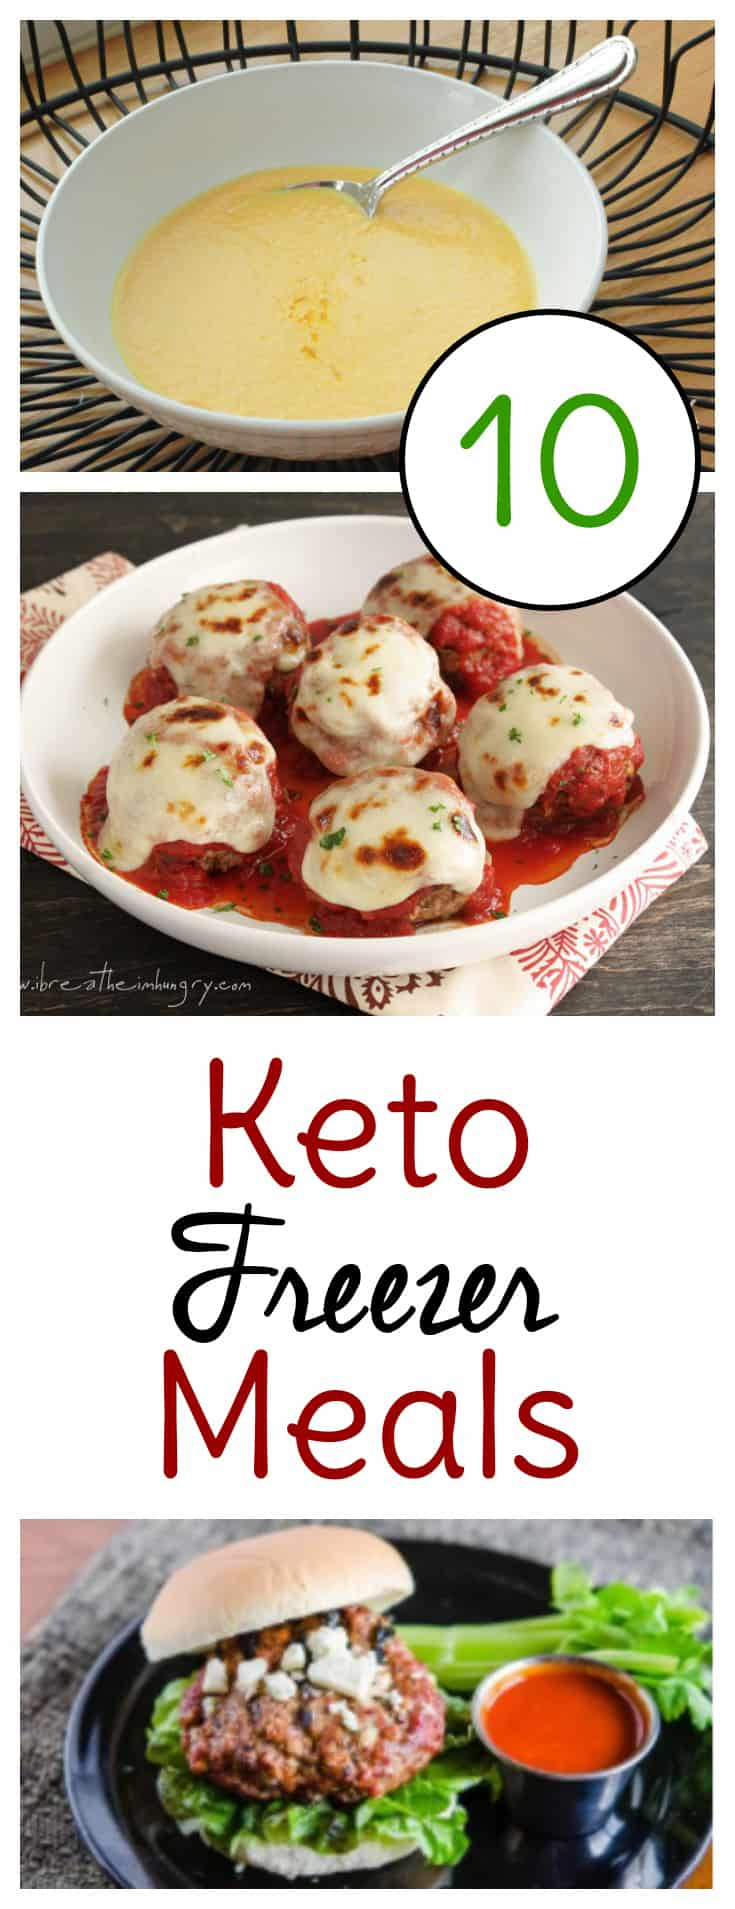 Keto Freezer Meals to Make Ahead! - Sweet T Makes Three